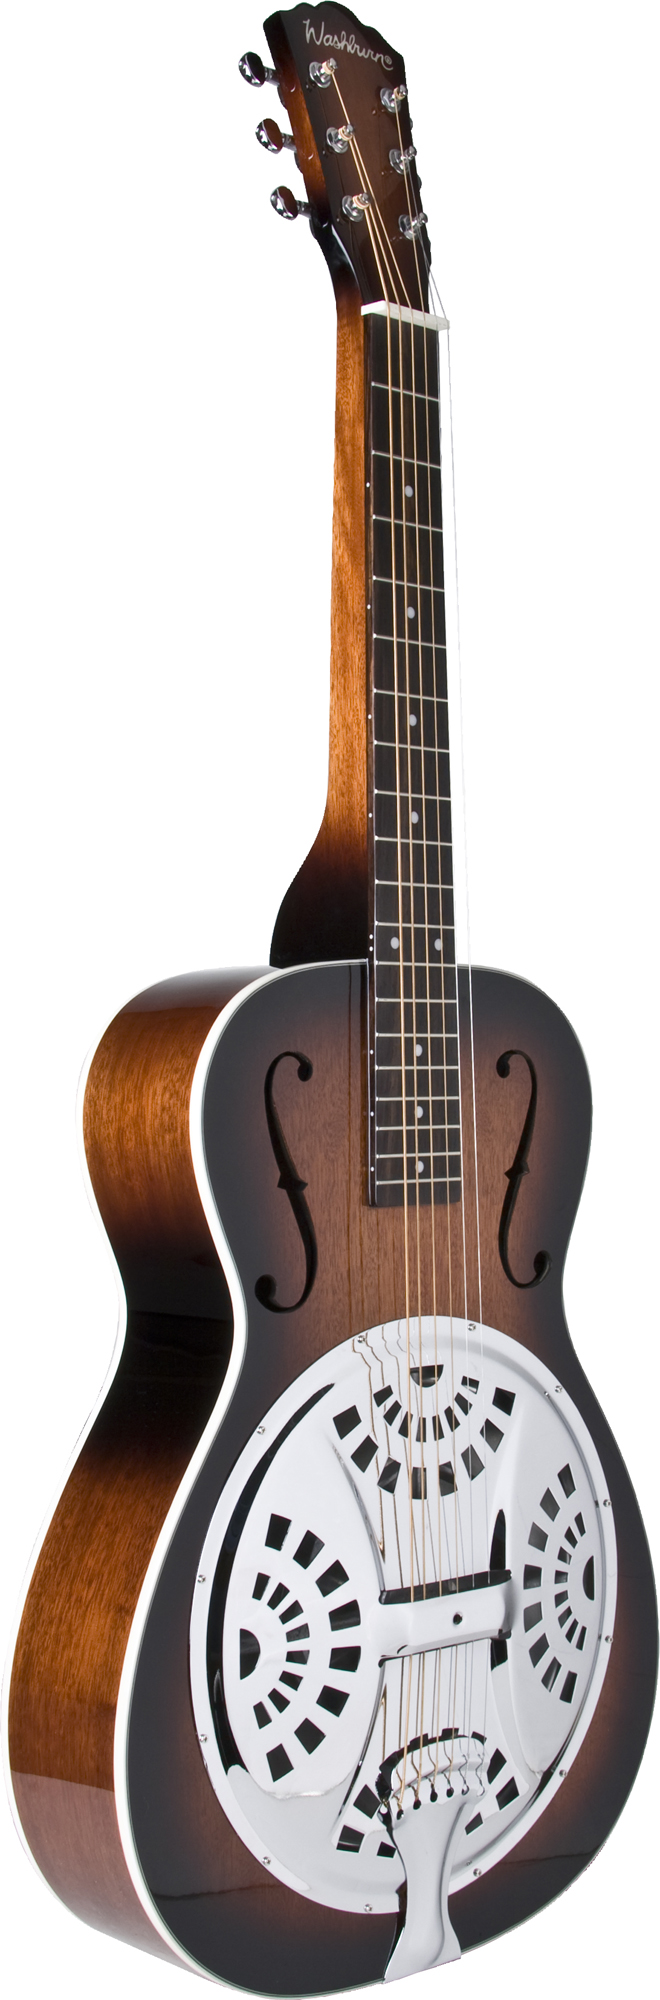 bluegrass guitar  Washburn R15S Bluegrass Acoustic - Electric Guitar Resonators ...